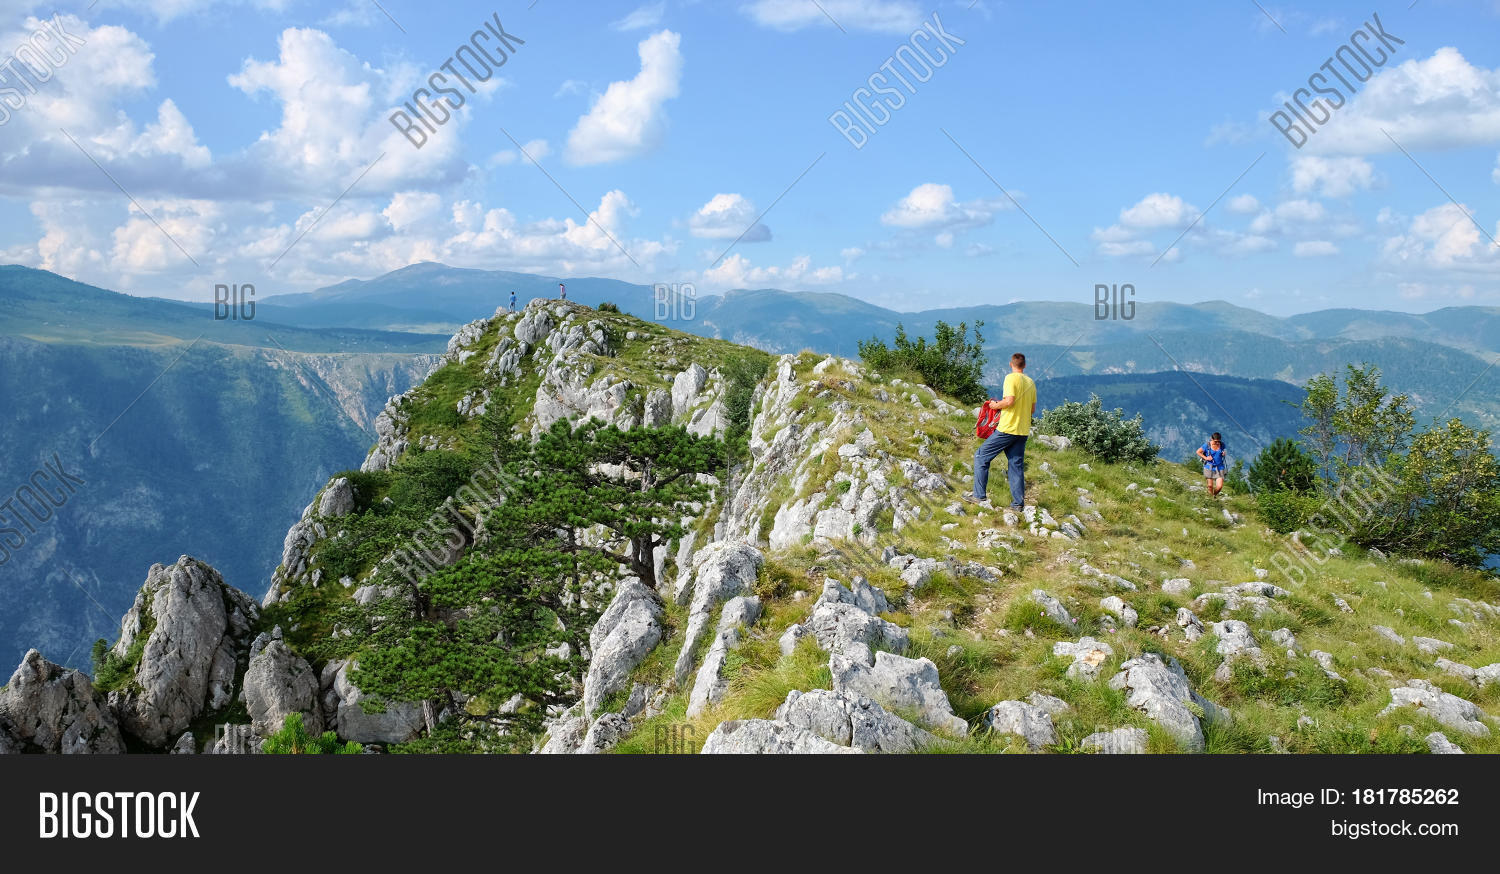 Durmitor Park Image Photo Free Trial Bigstock